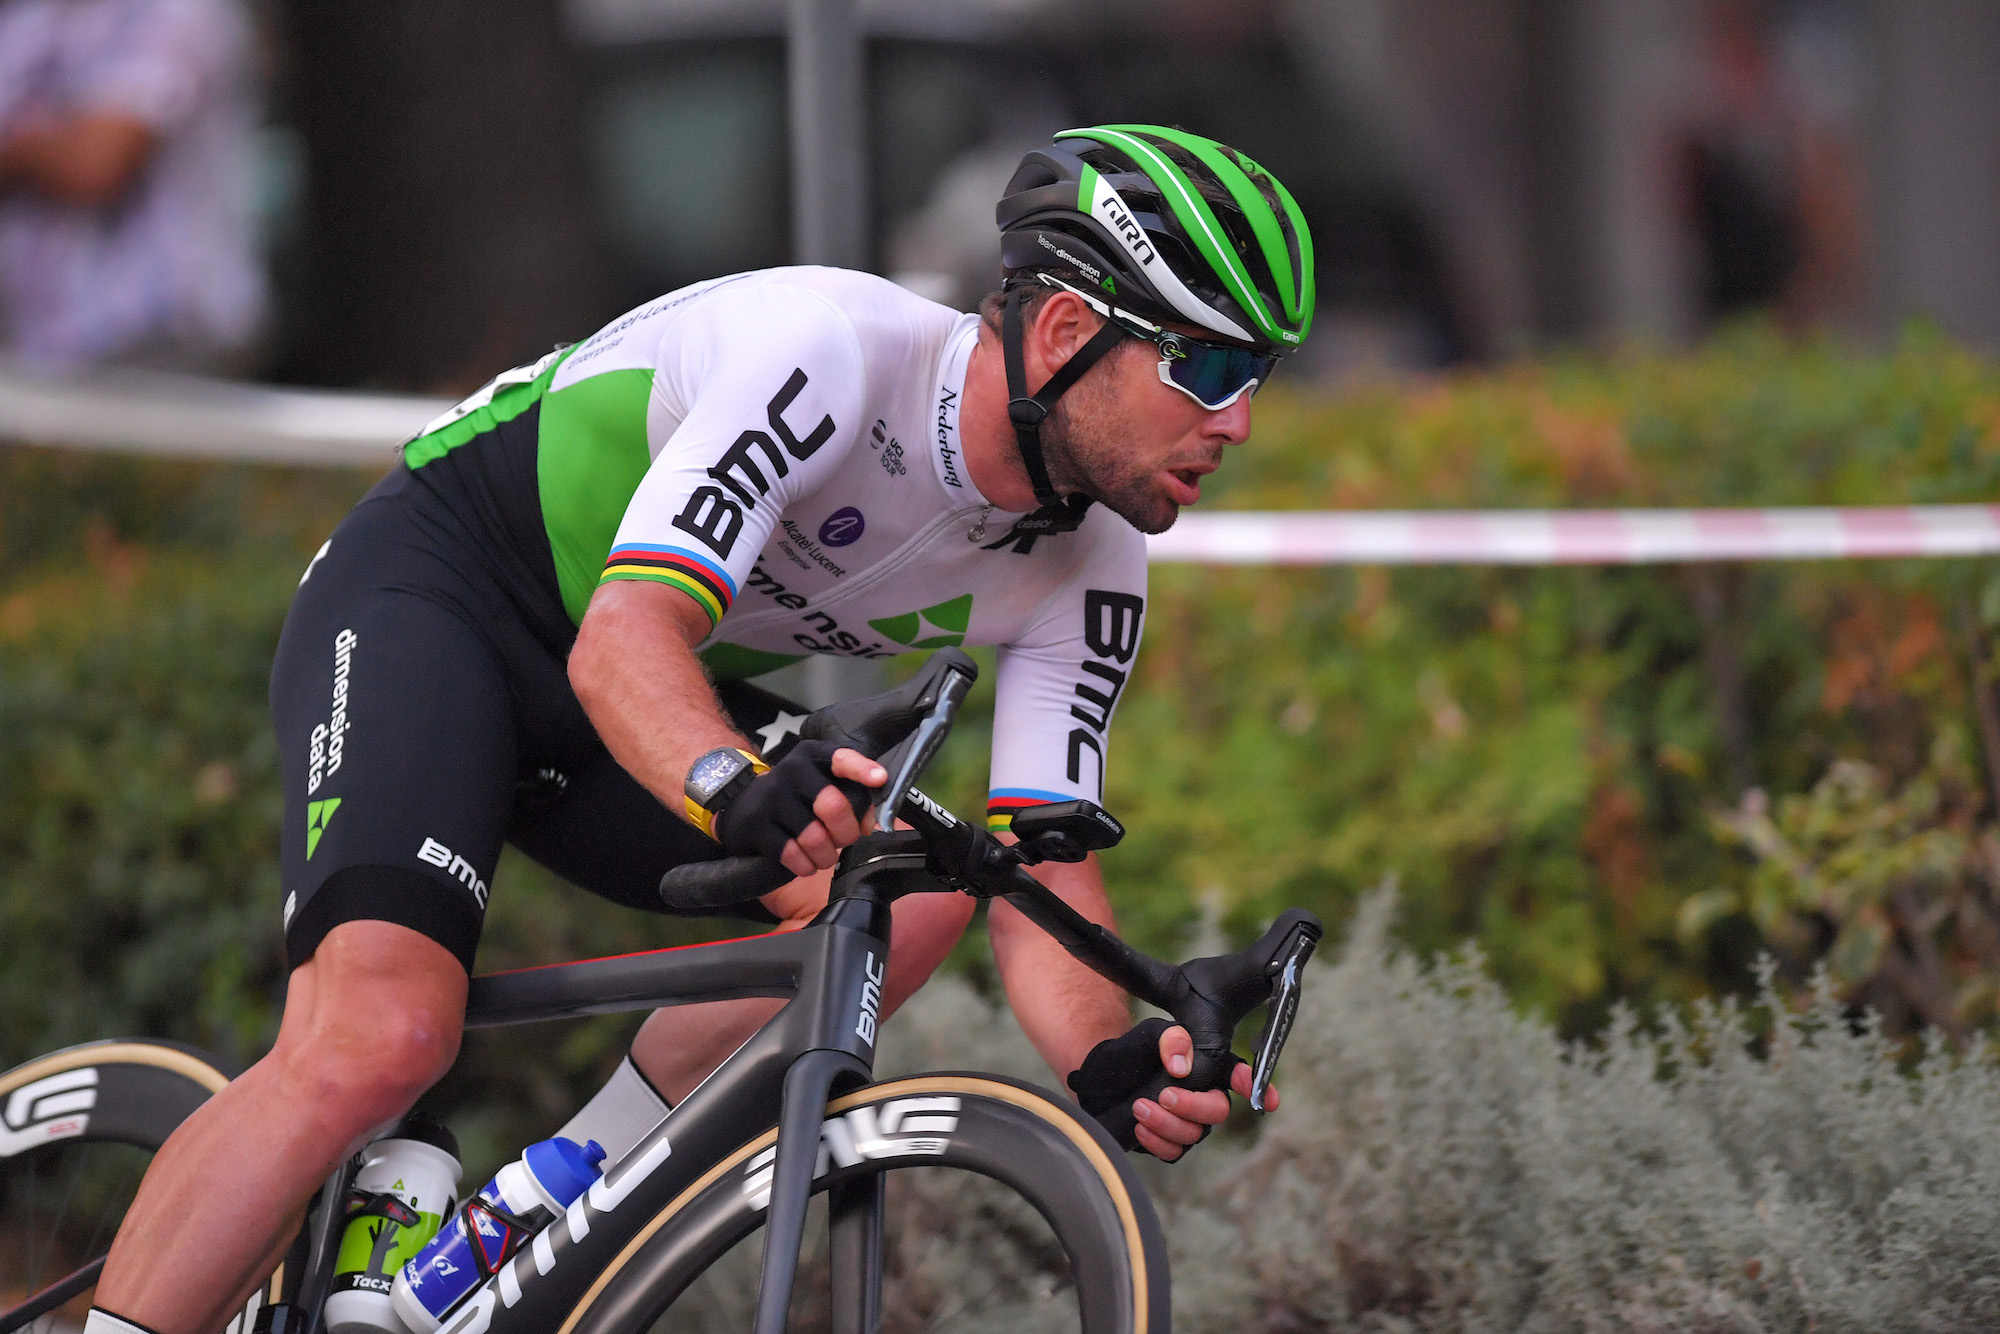 Mark Cavendish: People said I was finished in 2010 and every year since